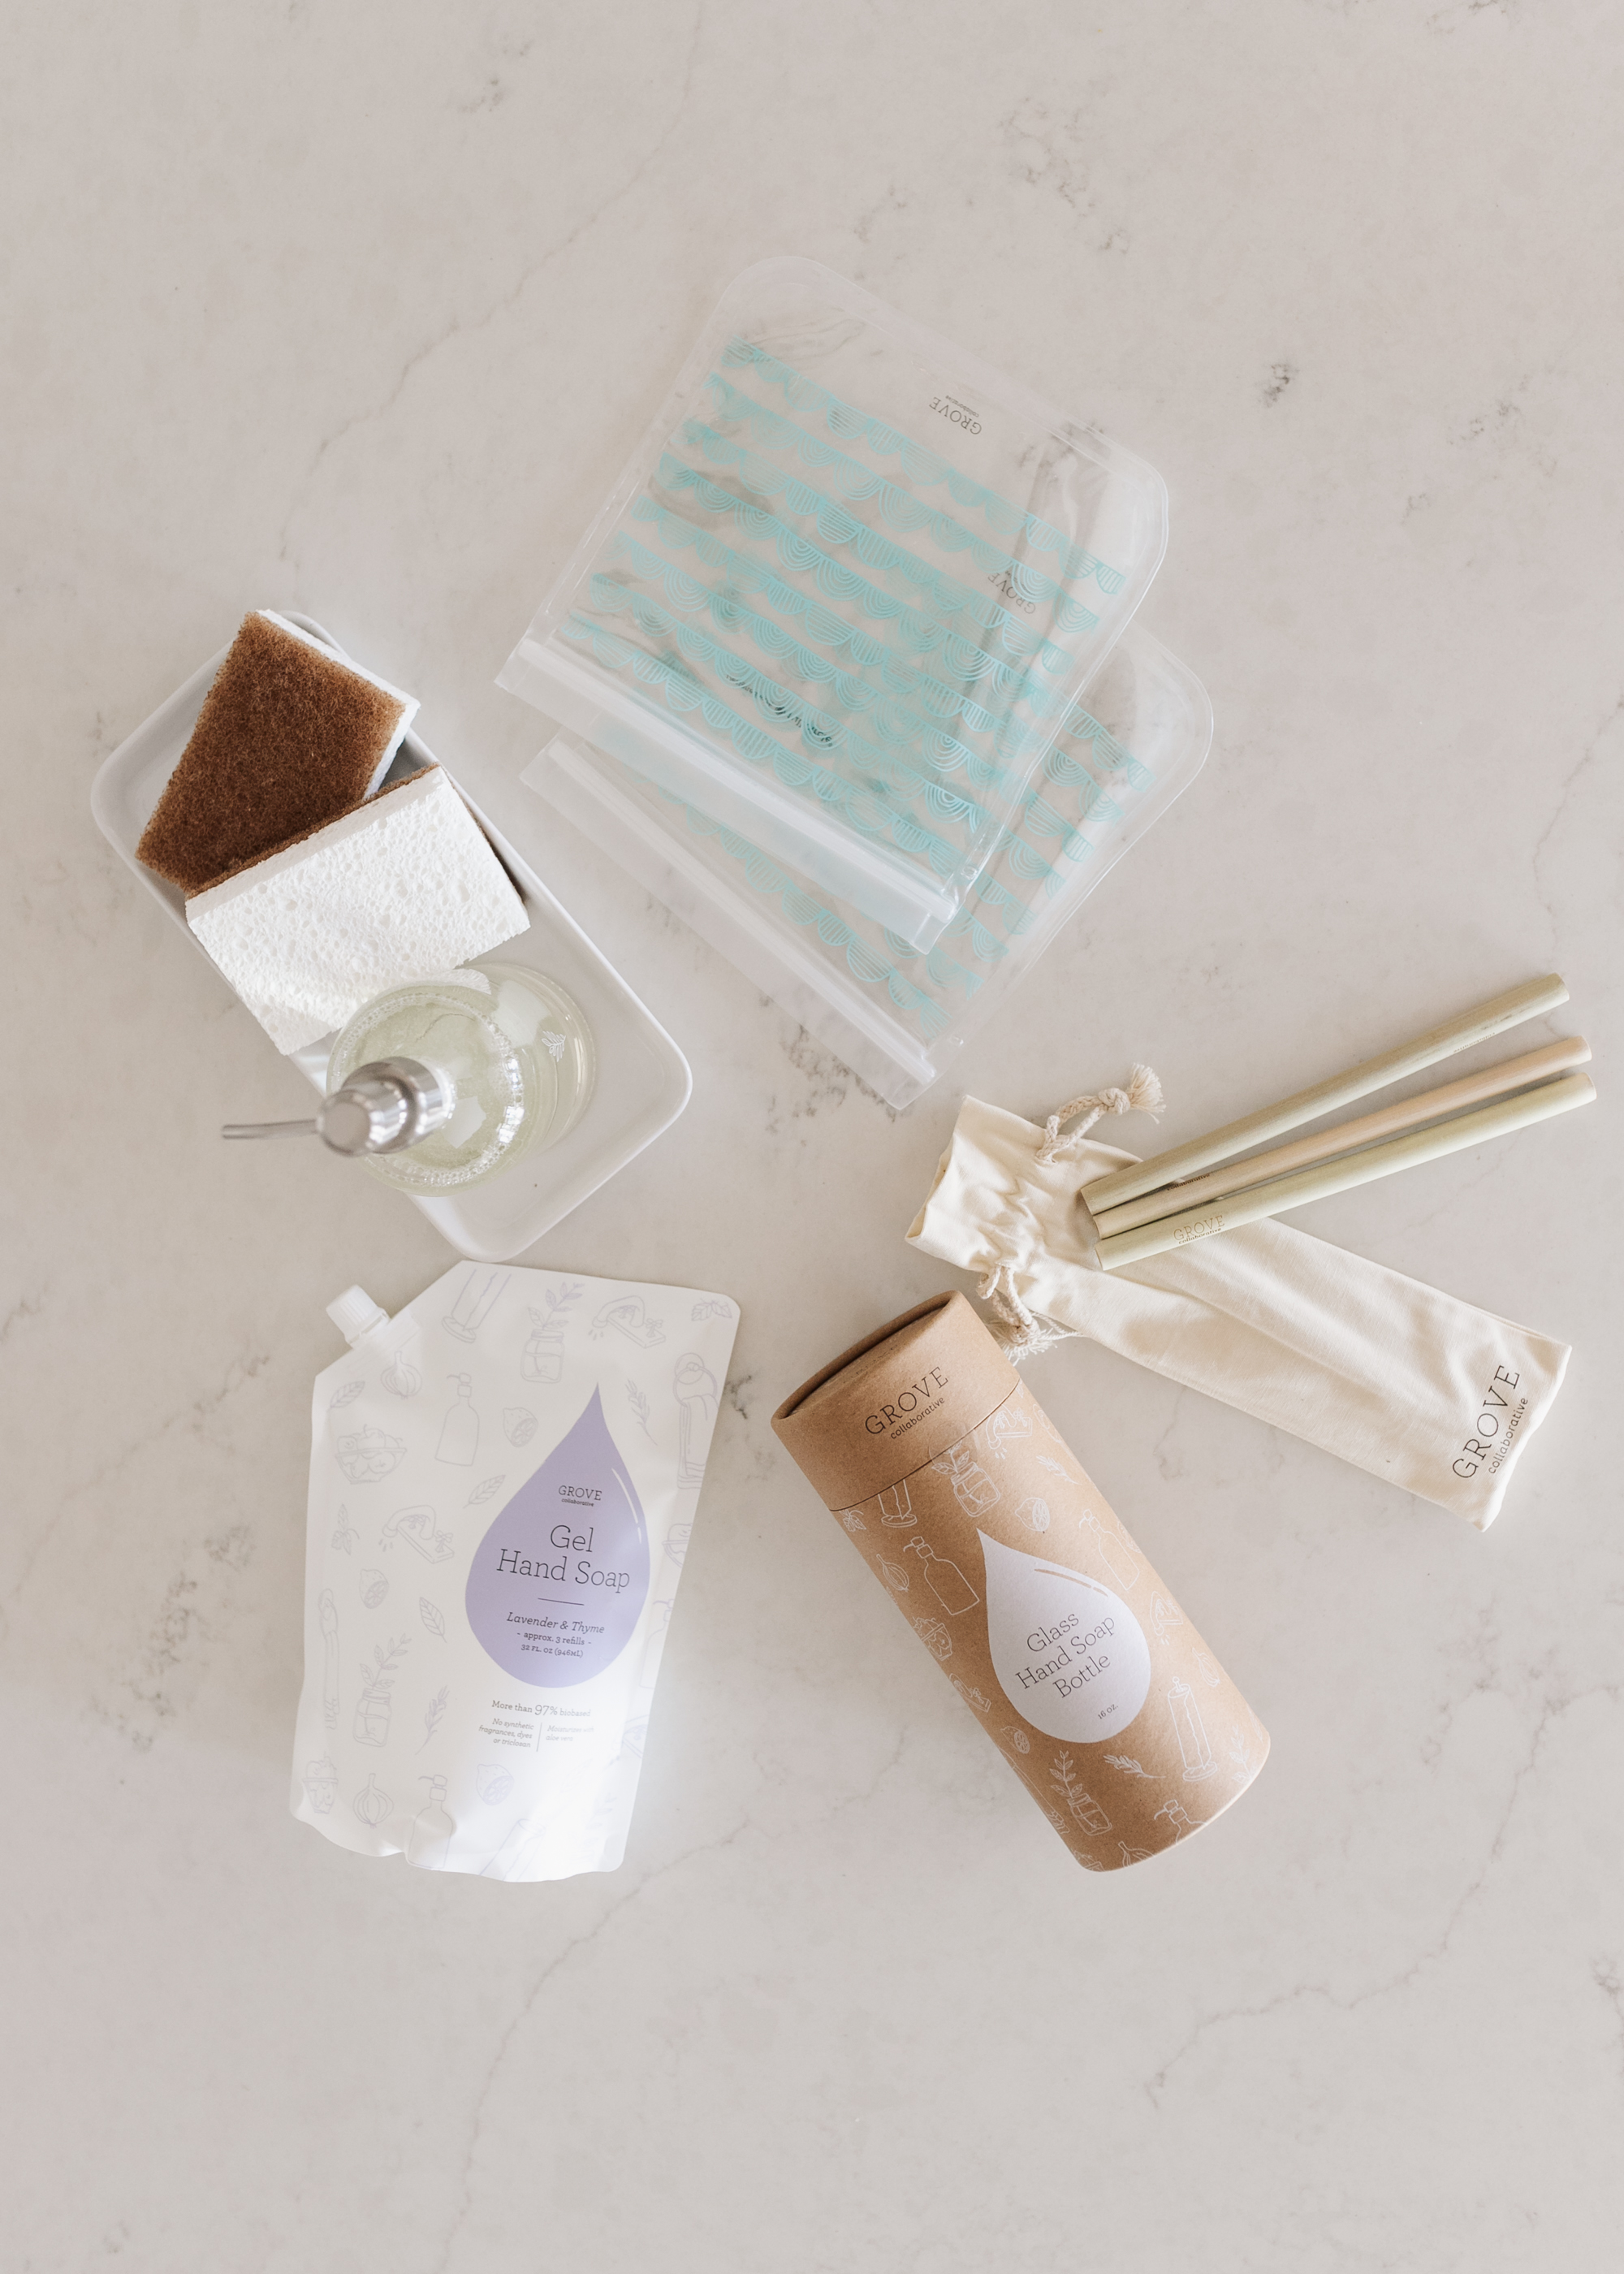 FREE gift with your first order at Grove Collaborative